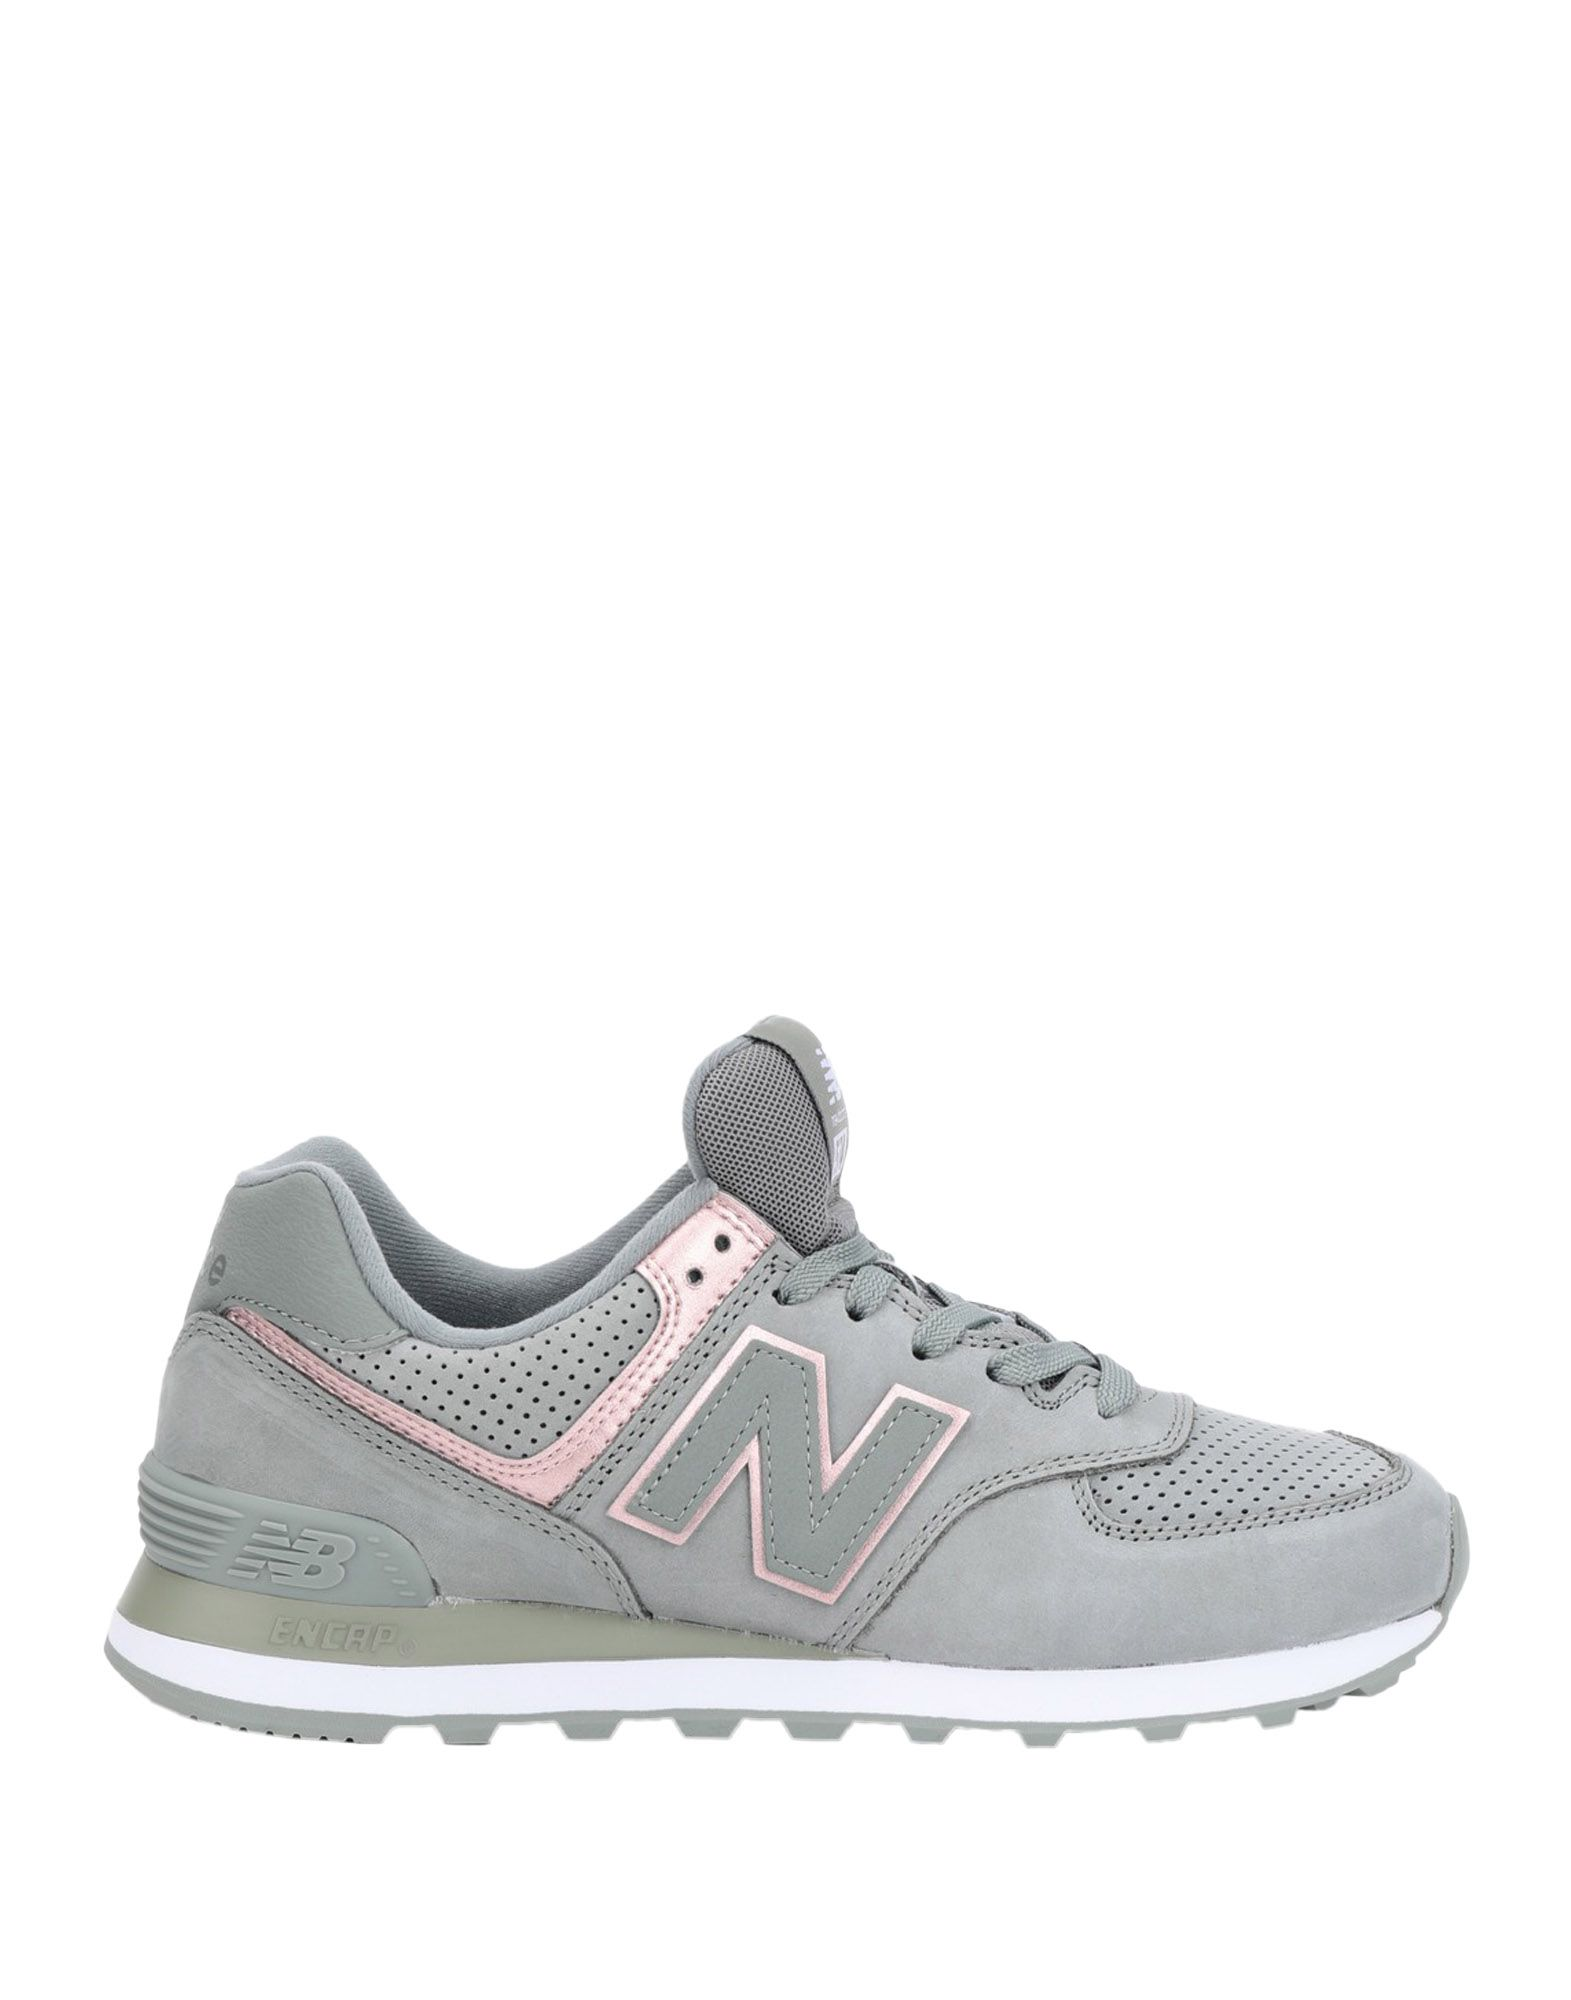 New Balance Balance Sneakers - Women New Balance Balance Sneakers online on  Canada - 11567762DV 69b405